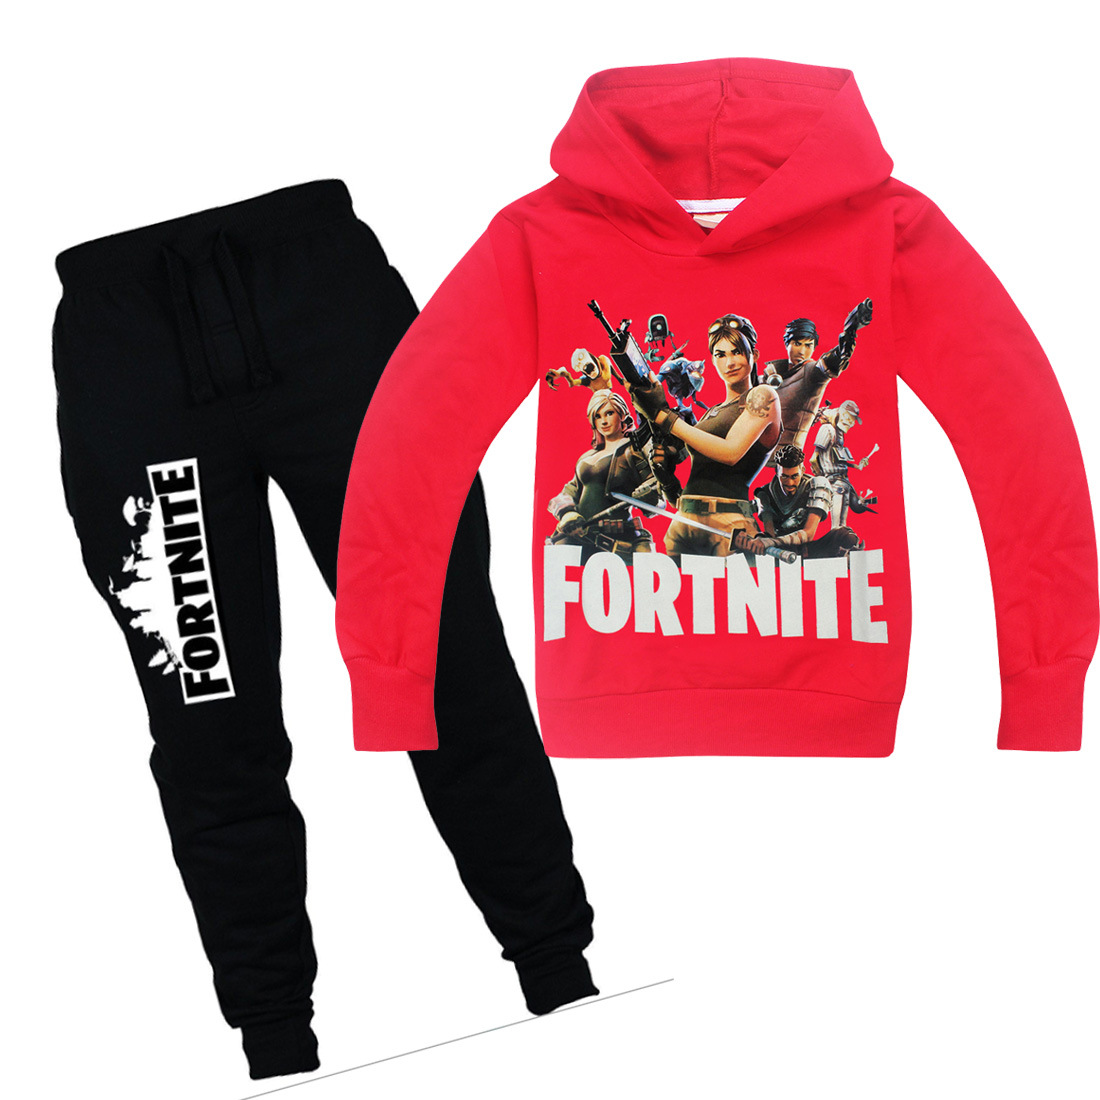 2018 Fortnite Style Clothing Set Hot Sale Pure Cotton Set T Shirt + trousers Pant Funny Youth Girls Boys Kids Sport Wear Clothes